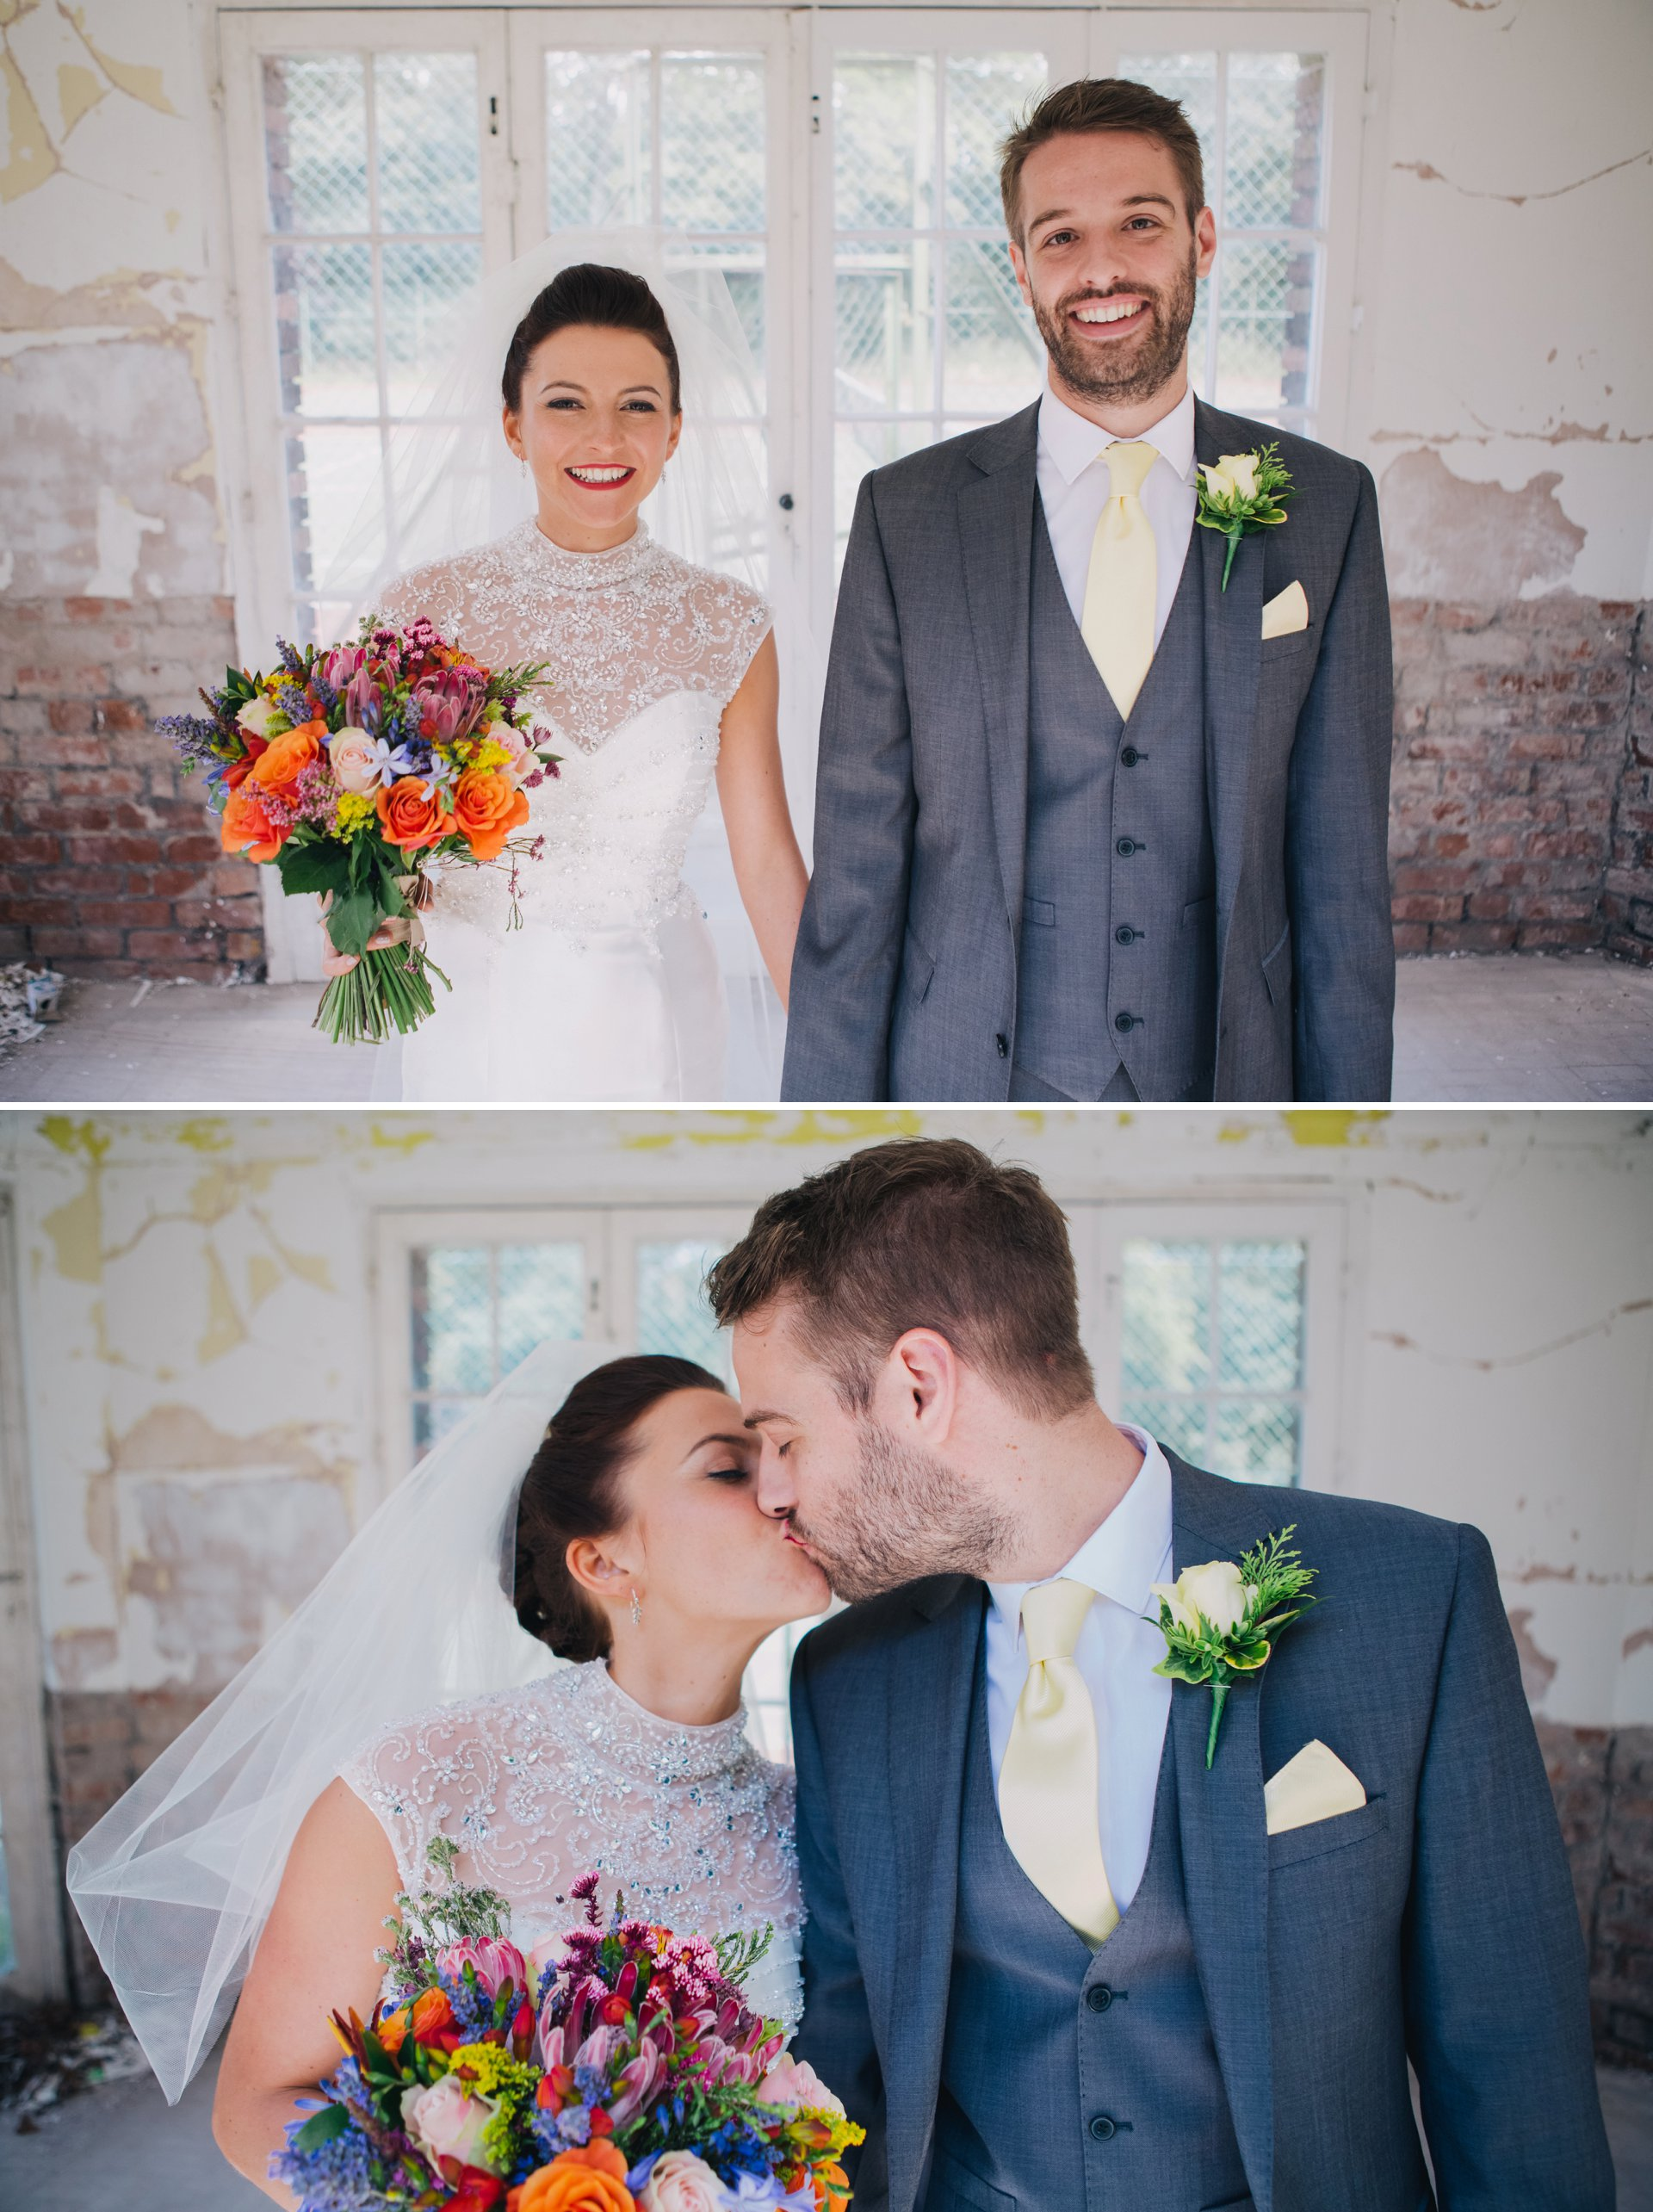 Cheshire Wedding Photographer Inglewood Manor Wedding Nikki & Mike_0029